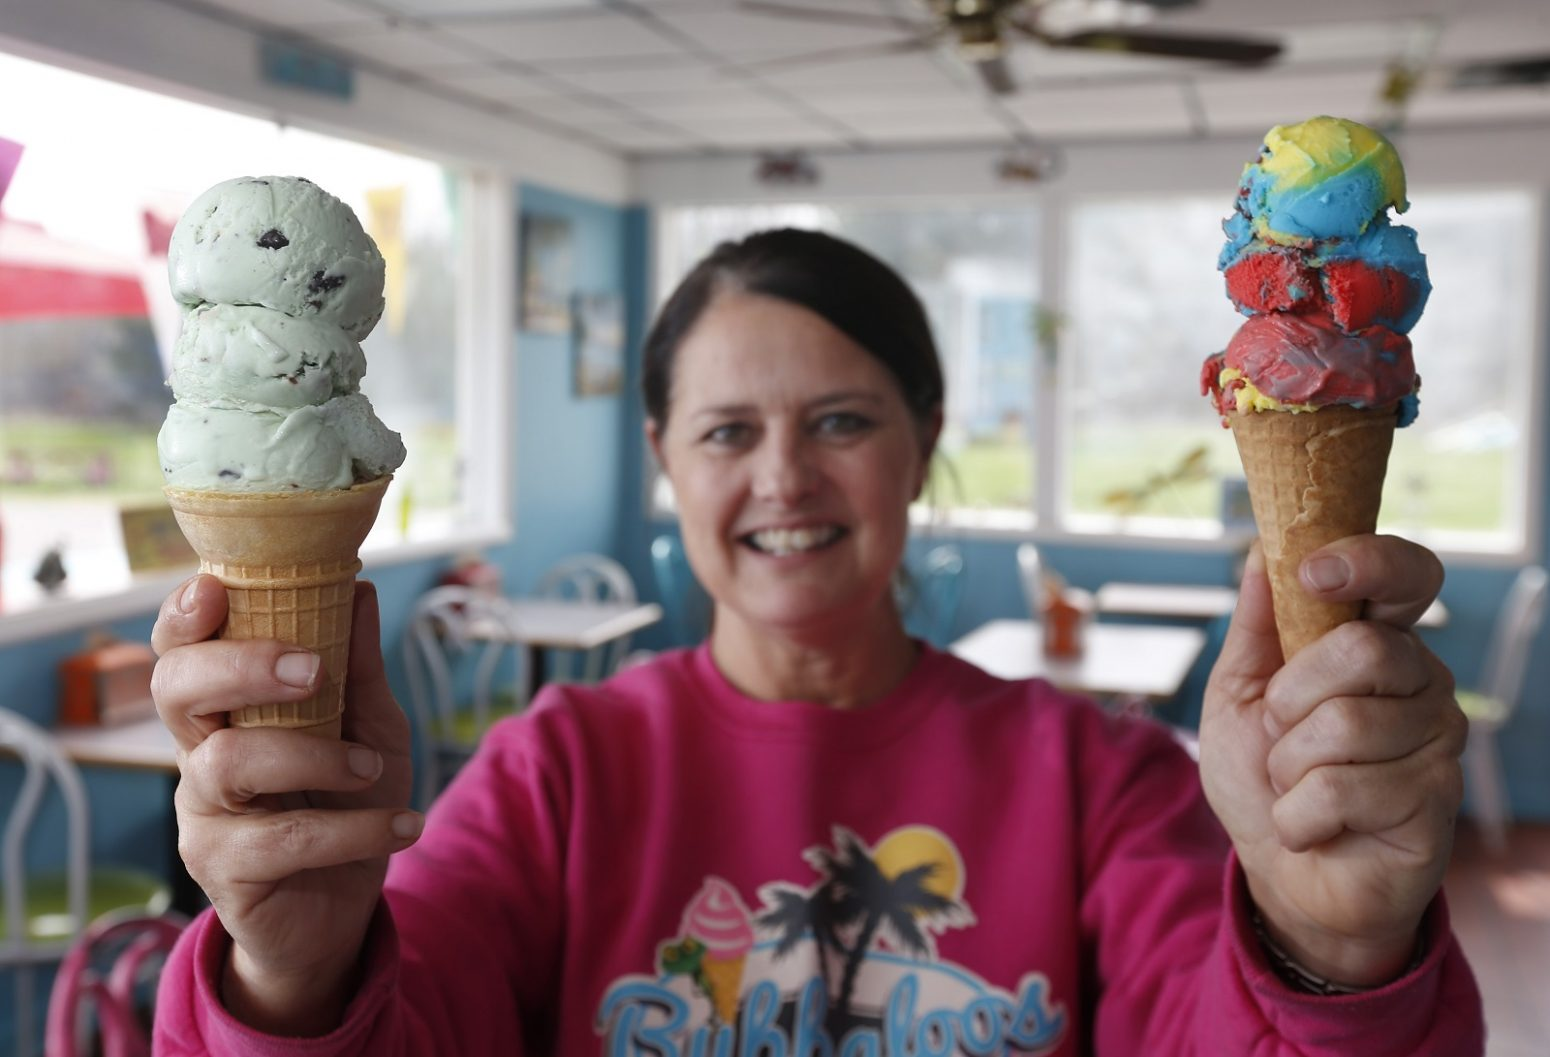 Perry's has more than 300 associates who sell their ice cream. One is Bubbaloos on Main Street in Akron. Owner Brenda Schlager shows off the popular Mint-Ting-A-Ling and Super Hero cones. (Sharon Cantillon/Buffalo News)